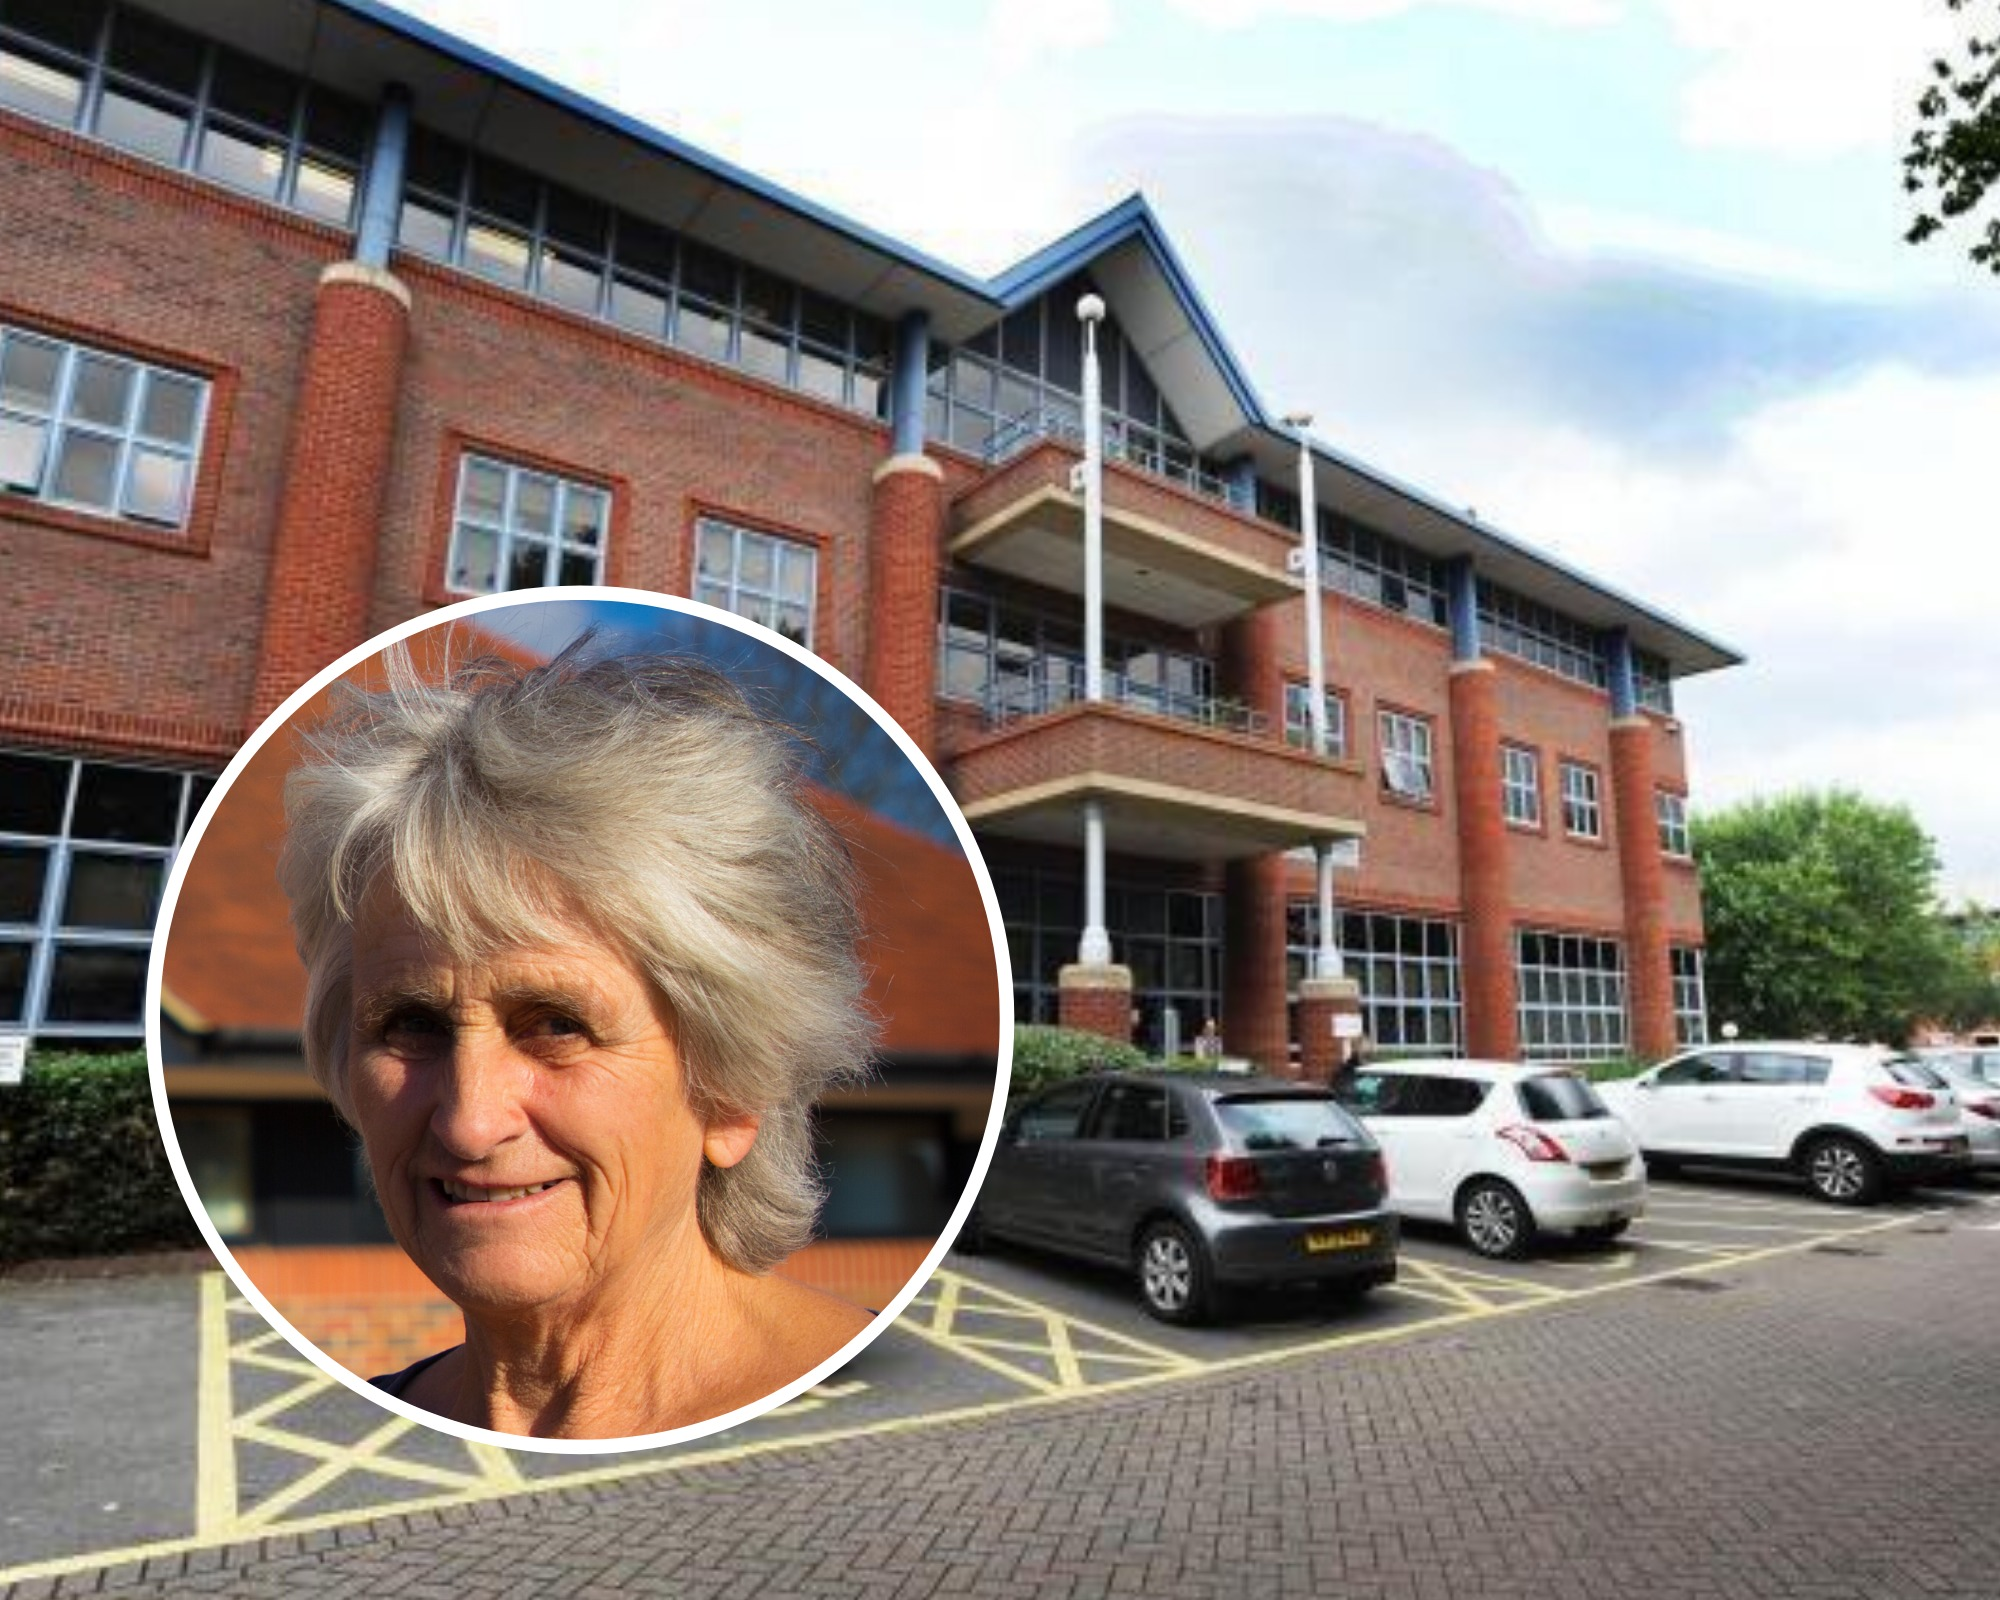 The South Oxfordshire District Council responds to the ultimatum on the local suspended level